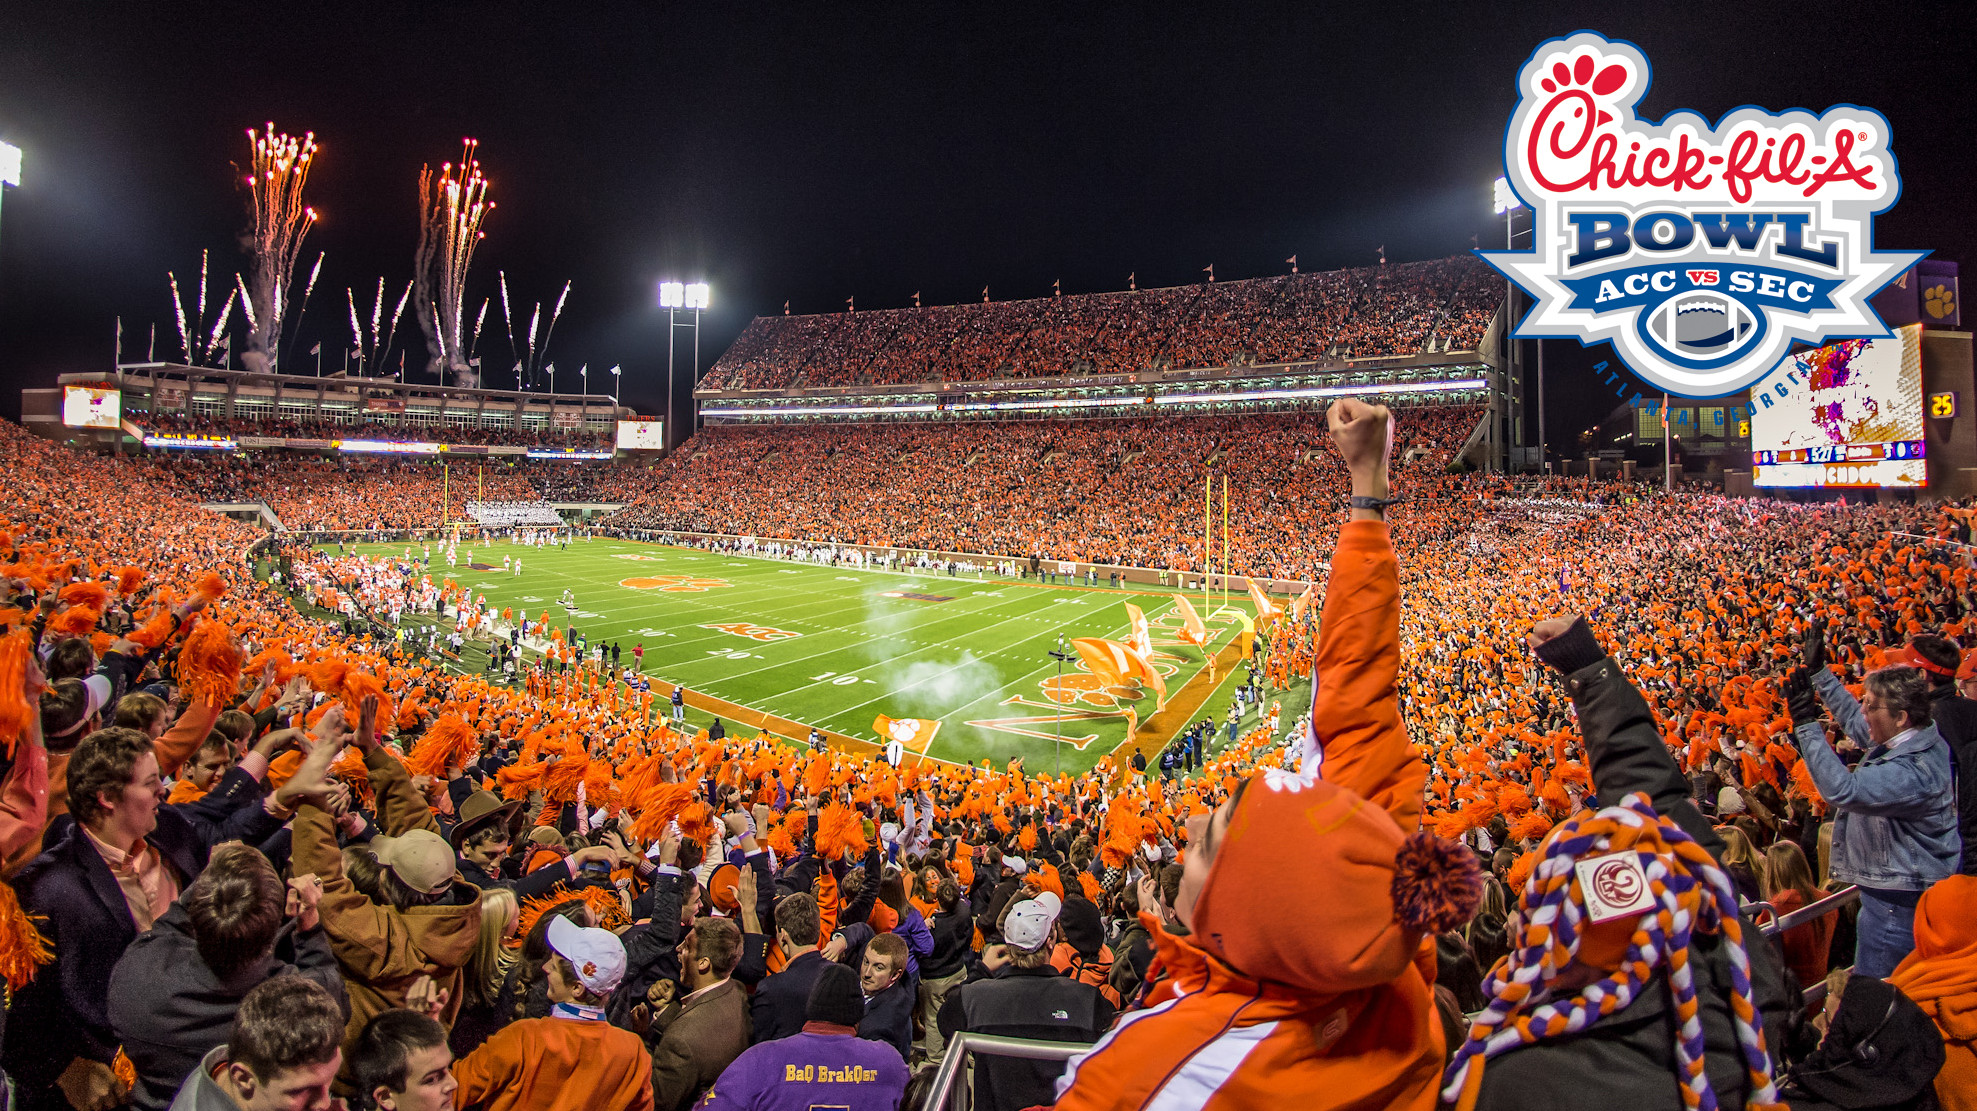 Official Chick-fil-A Bowl Travel and Hospitality Packages Available Now Through Clemson Sports Travel